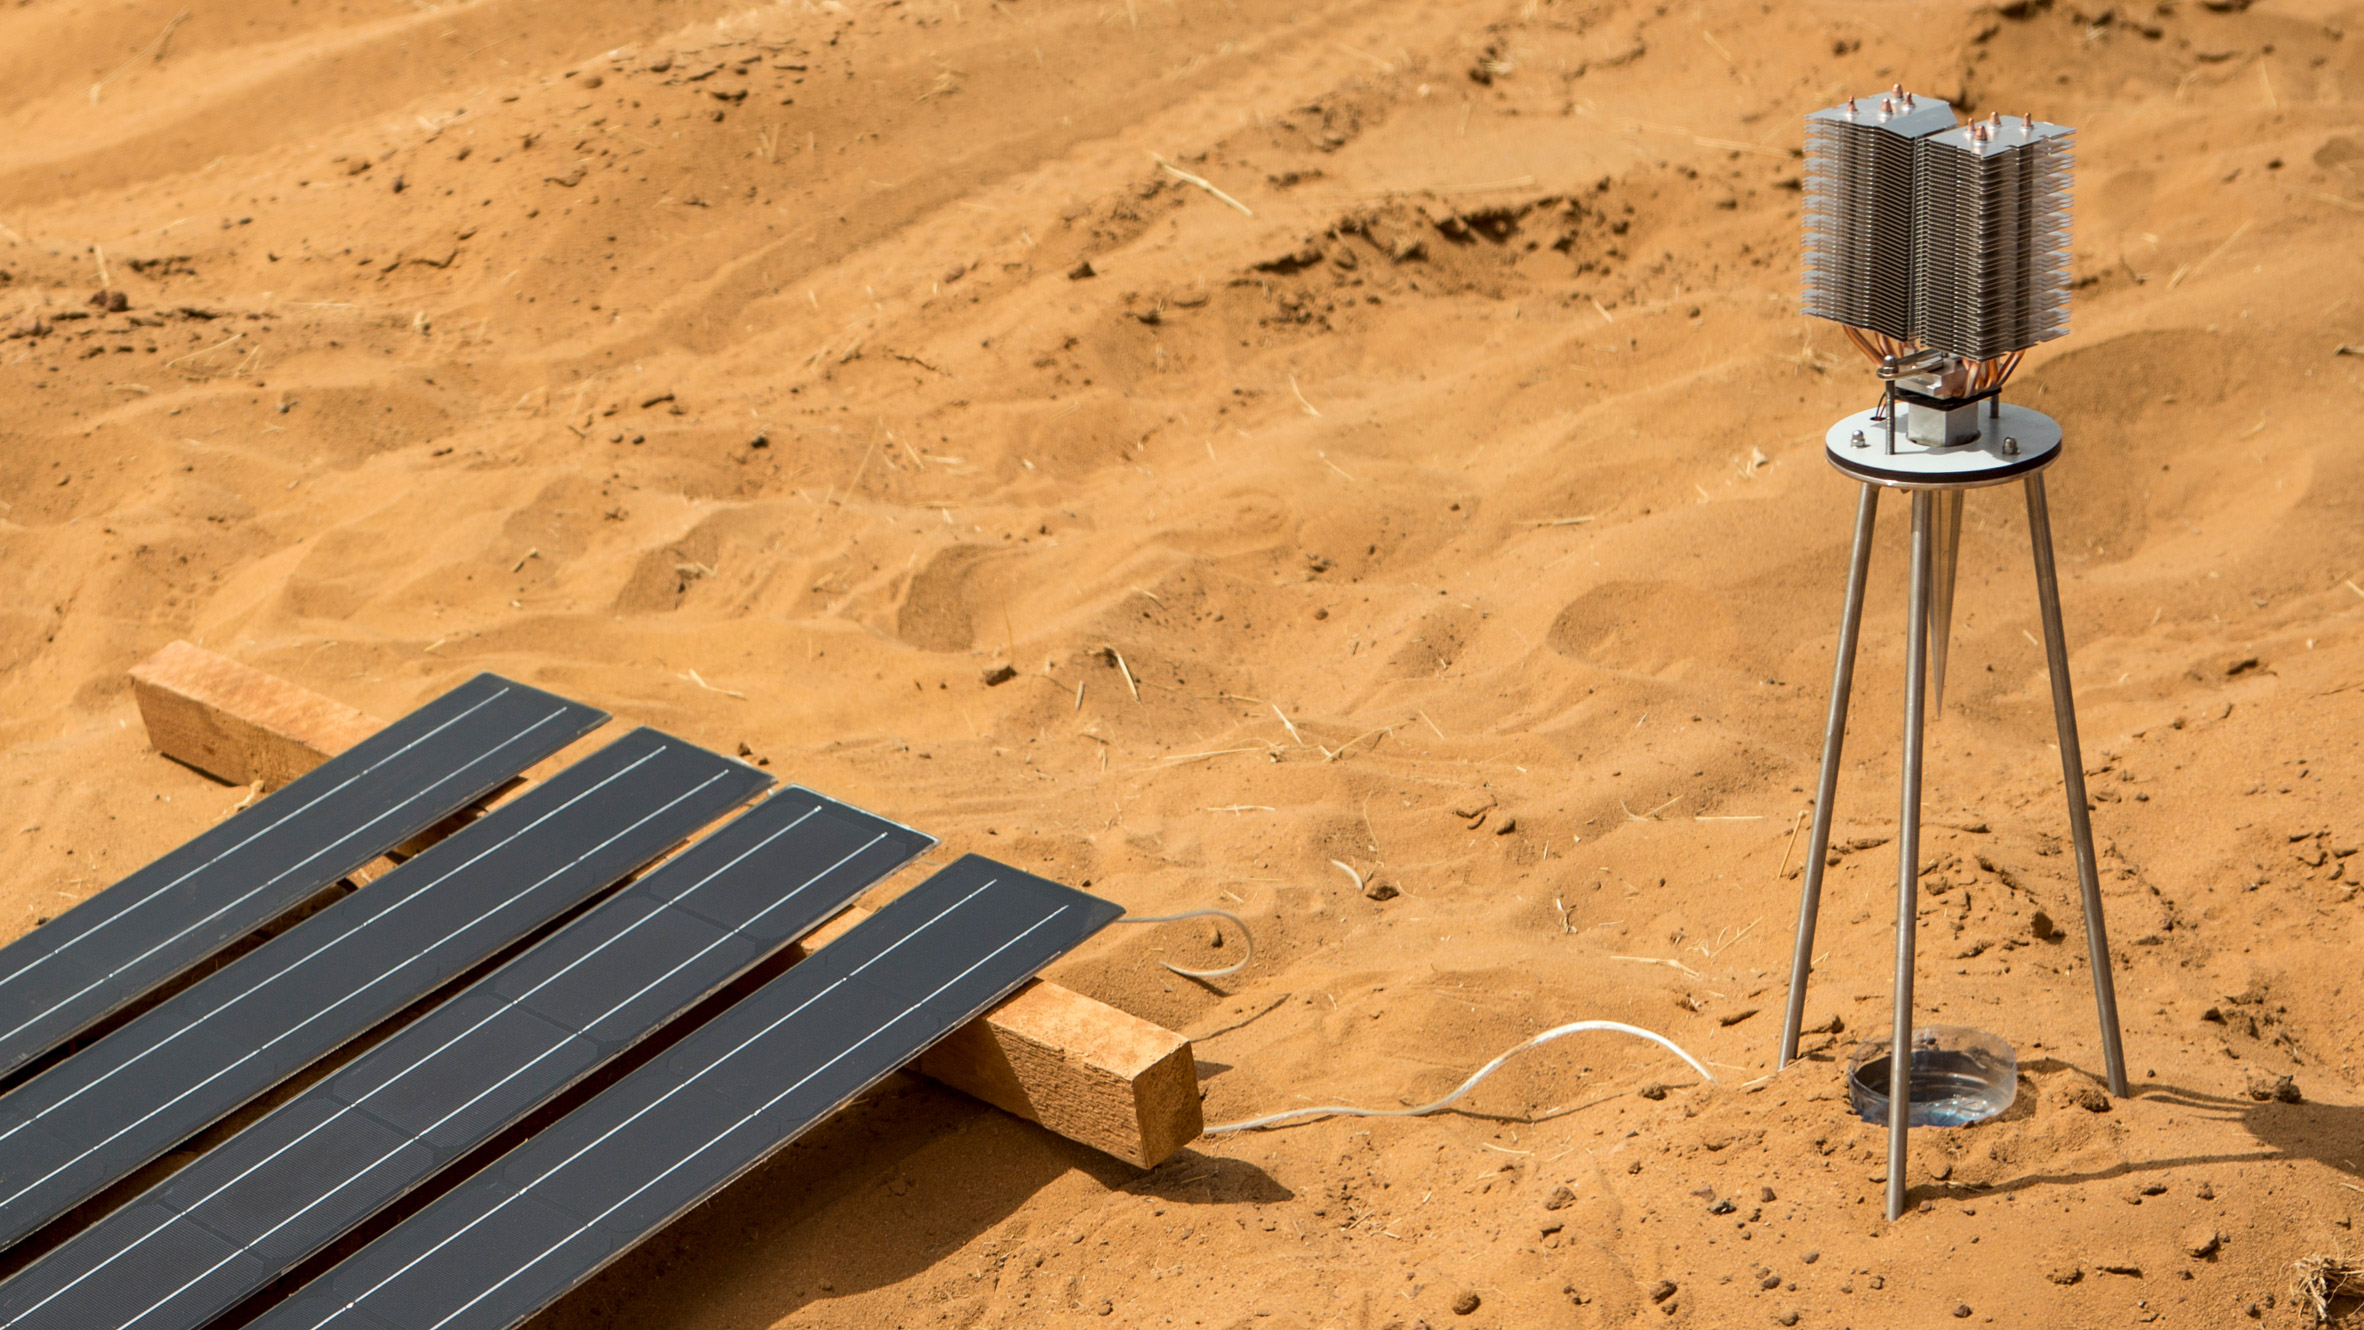 Sunglacier harnesses solar power to harvest water in the Sahara Desert